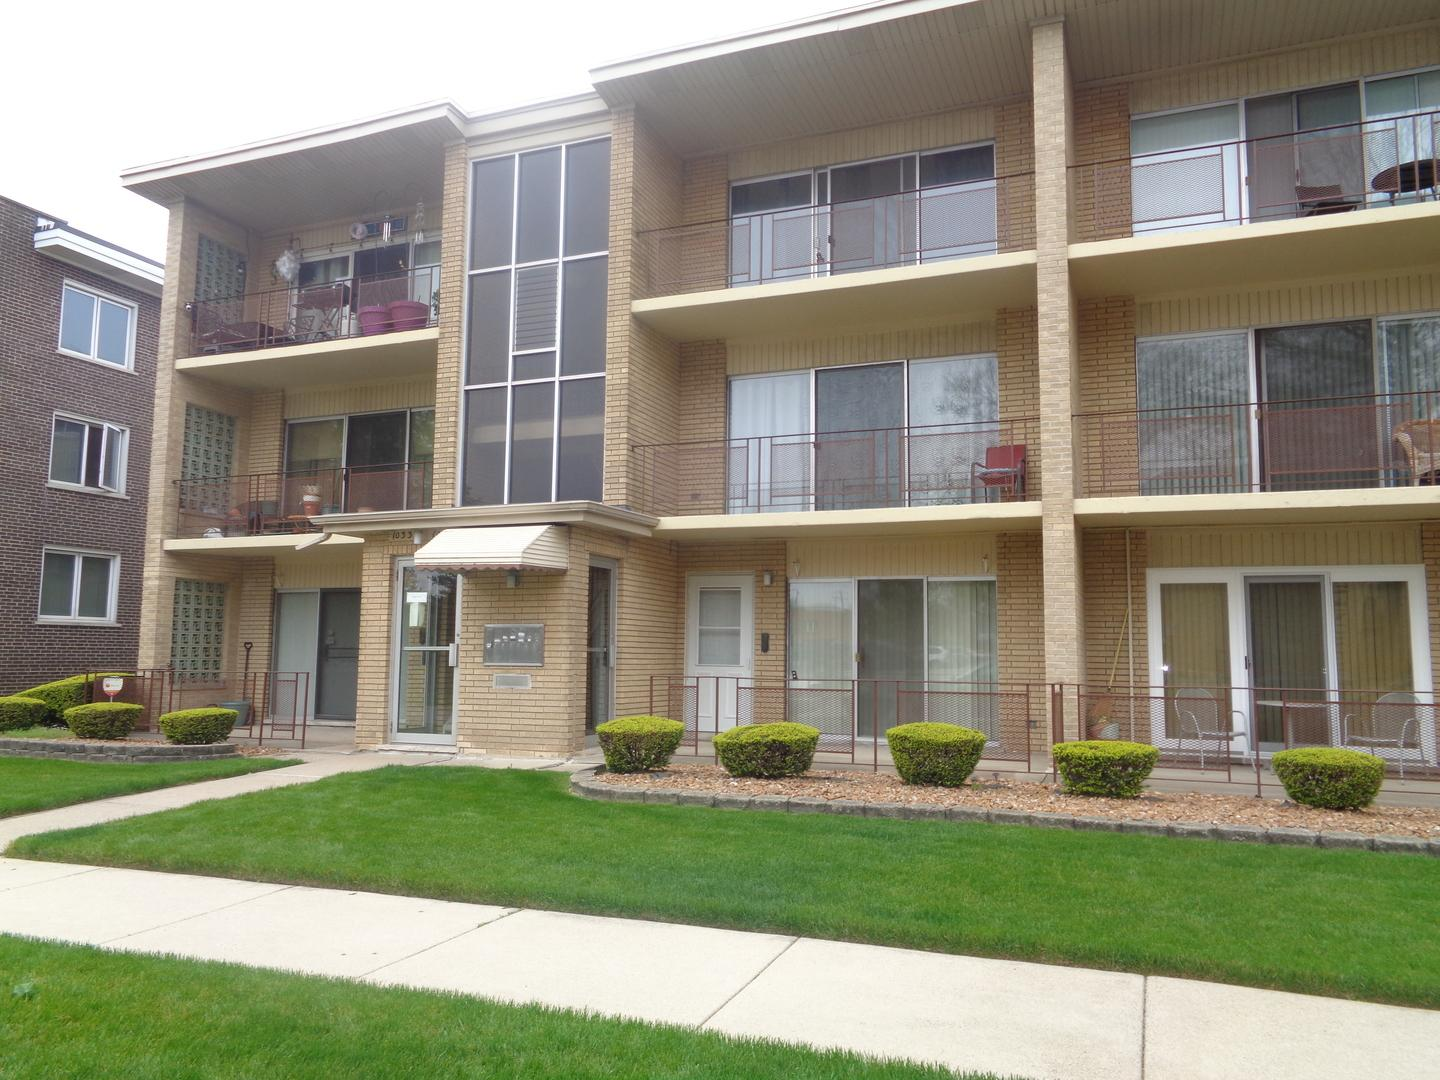 10330 South Komensky Avenue #3C, Oak Lawn, IL - $950 USD/ month